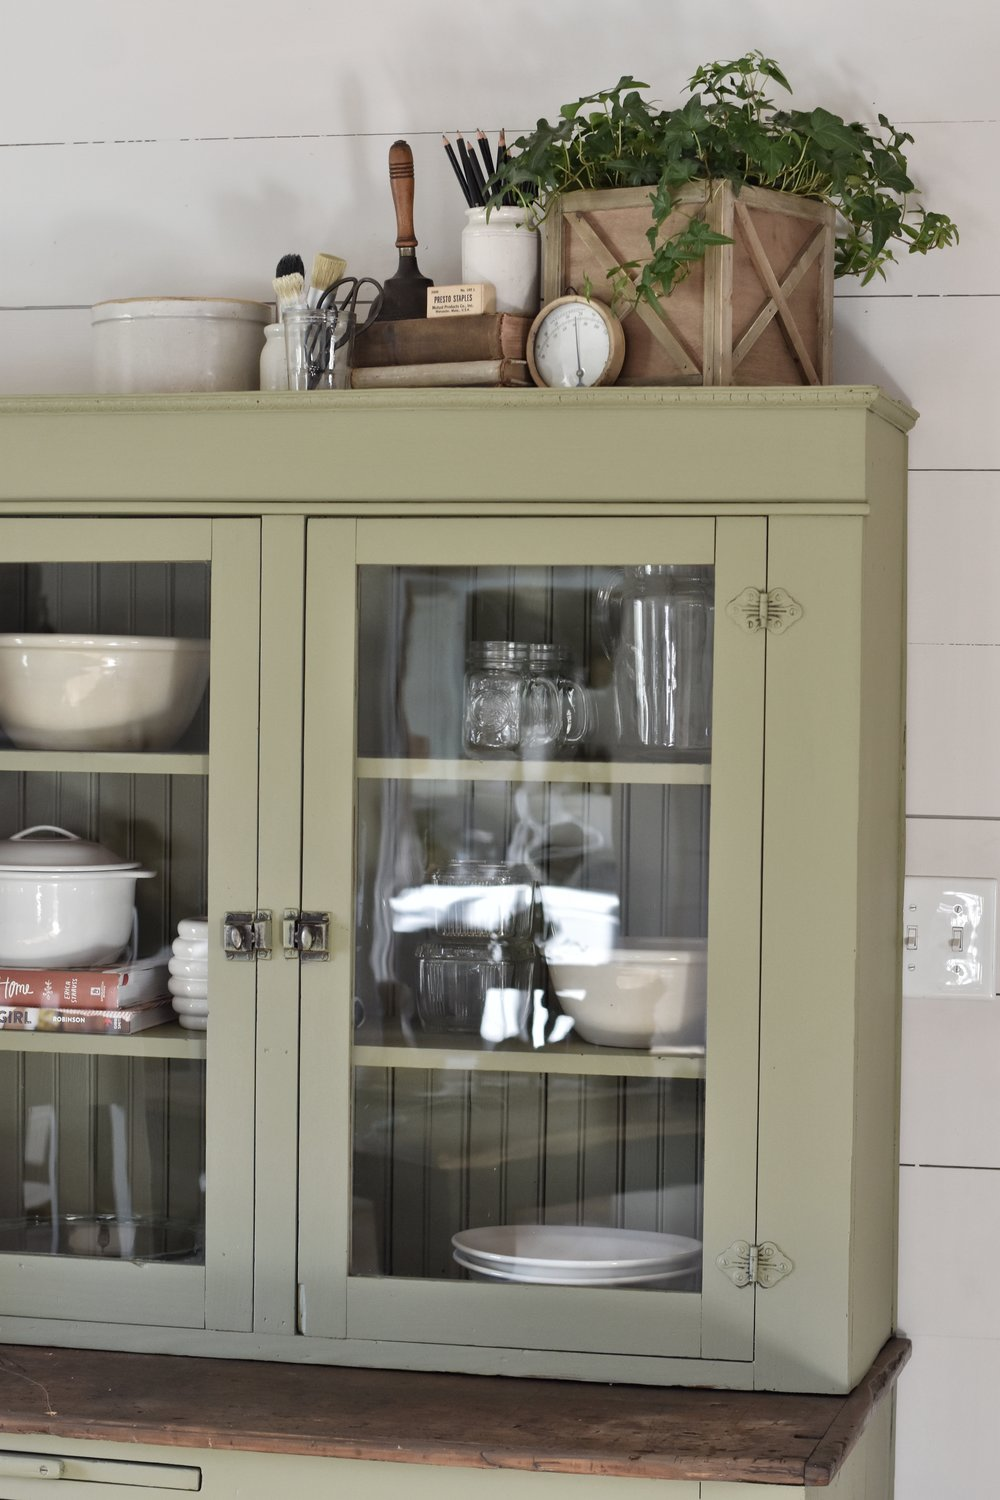 Simple Farmhouse Style Cupboard www.flatcreekfarmhouse.com